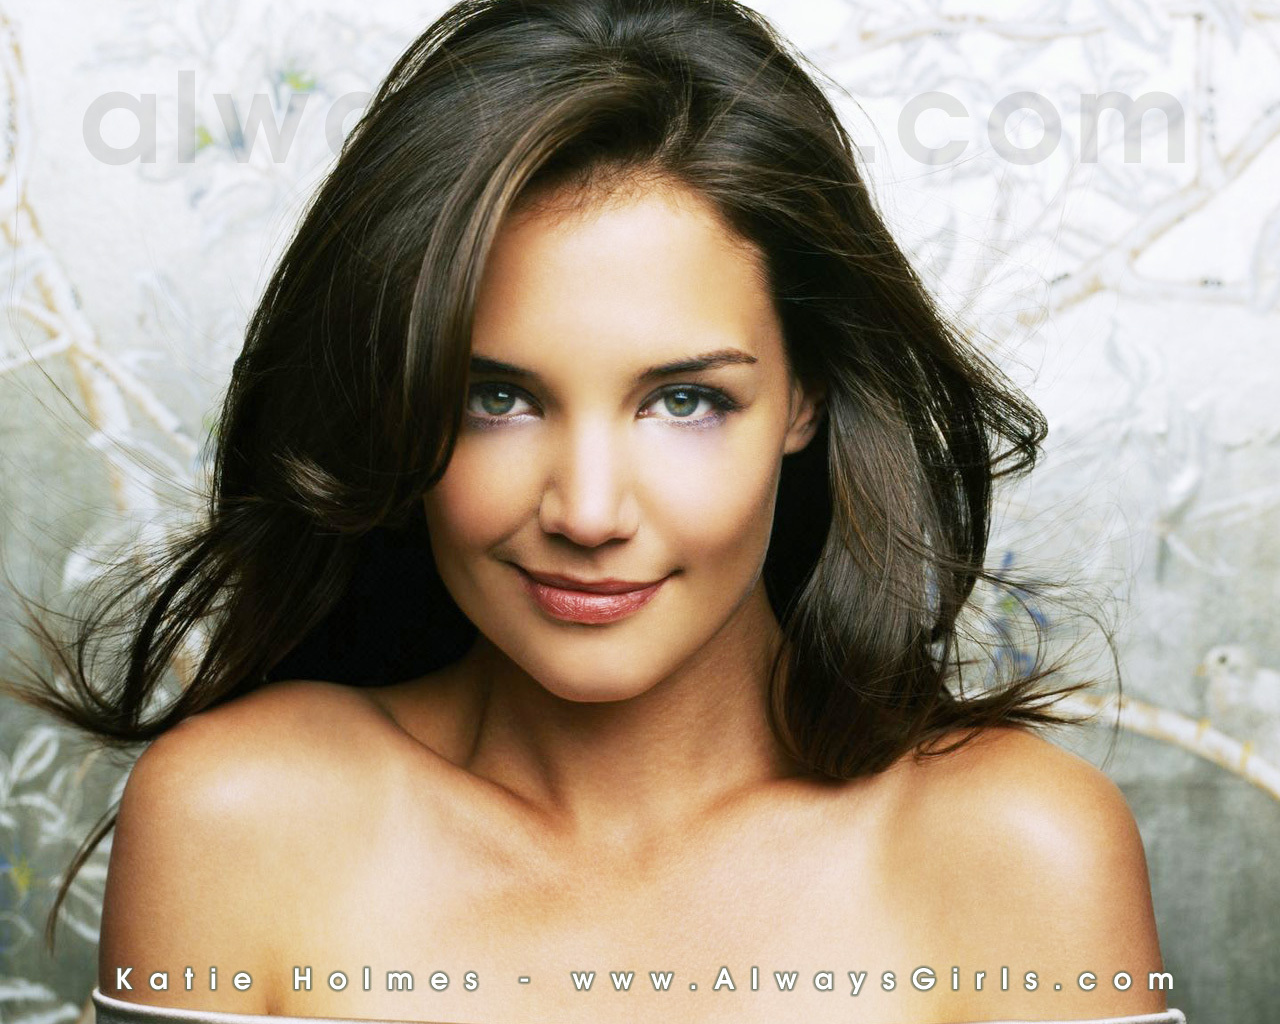 Cinema Photos And Wallpapers: katie holmes 2012 oscars